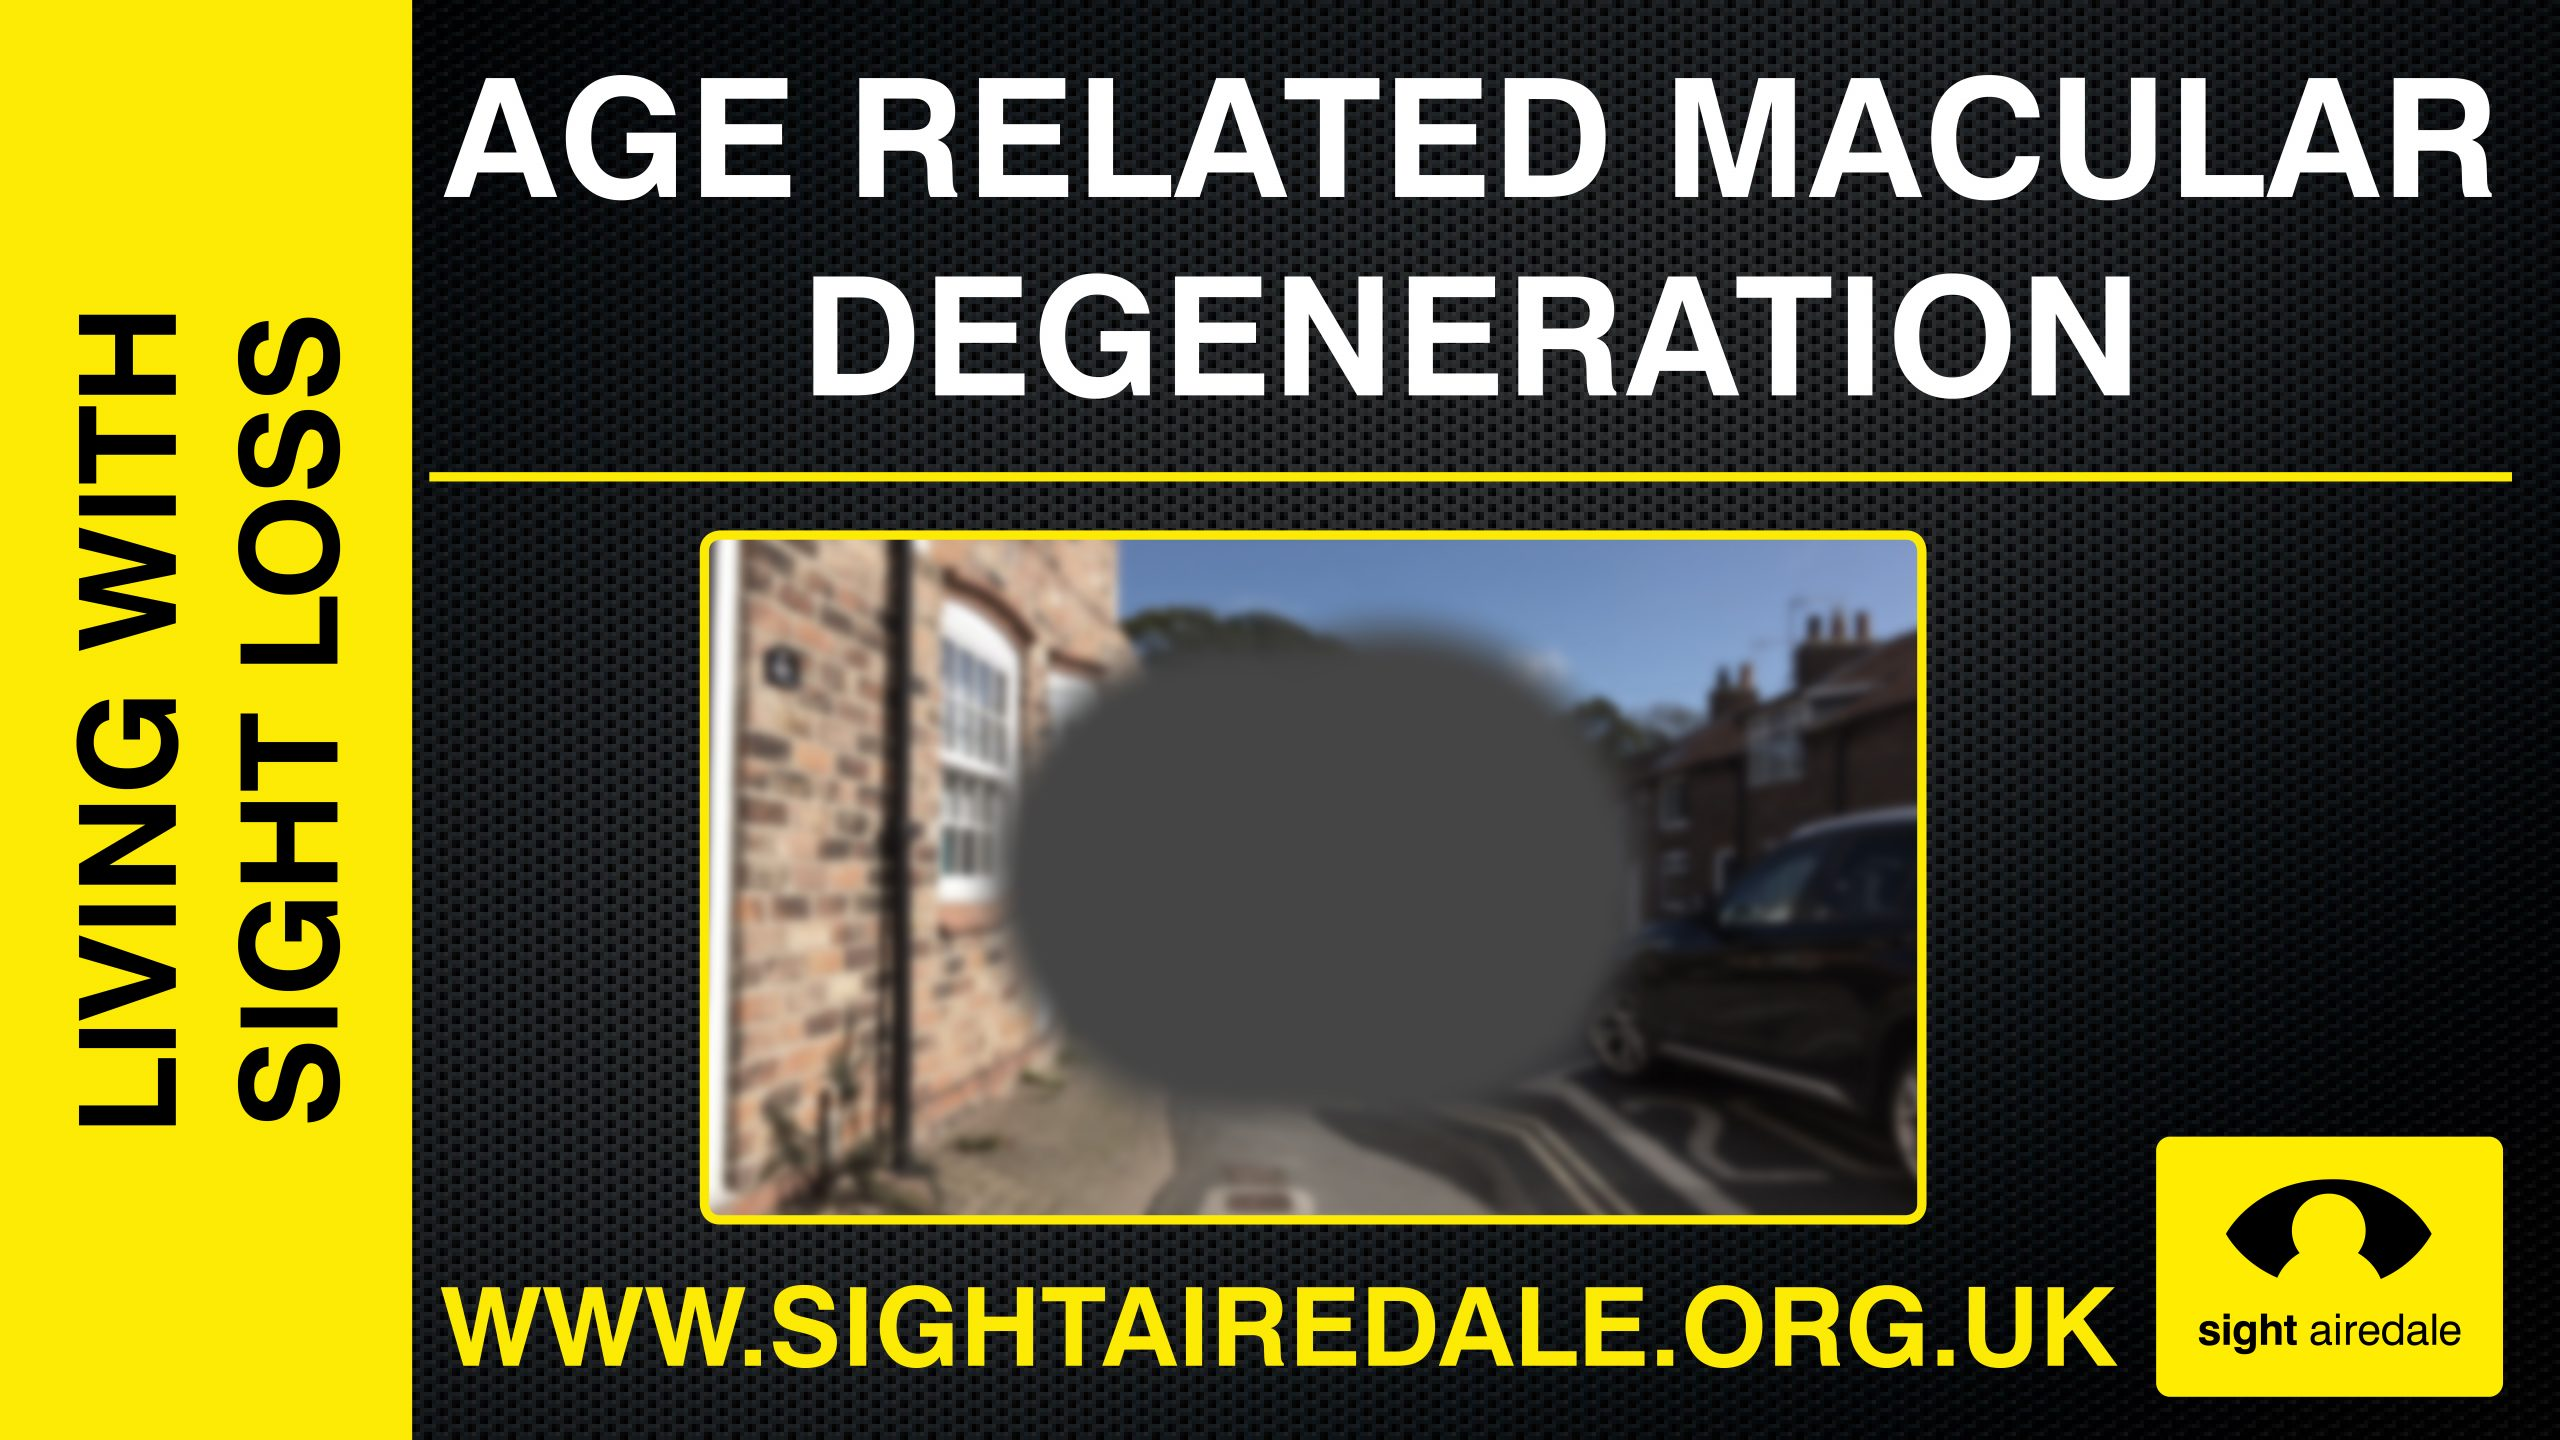 What do blind people see? - Macular Degeneration